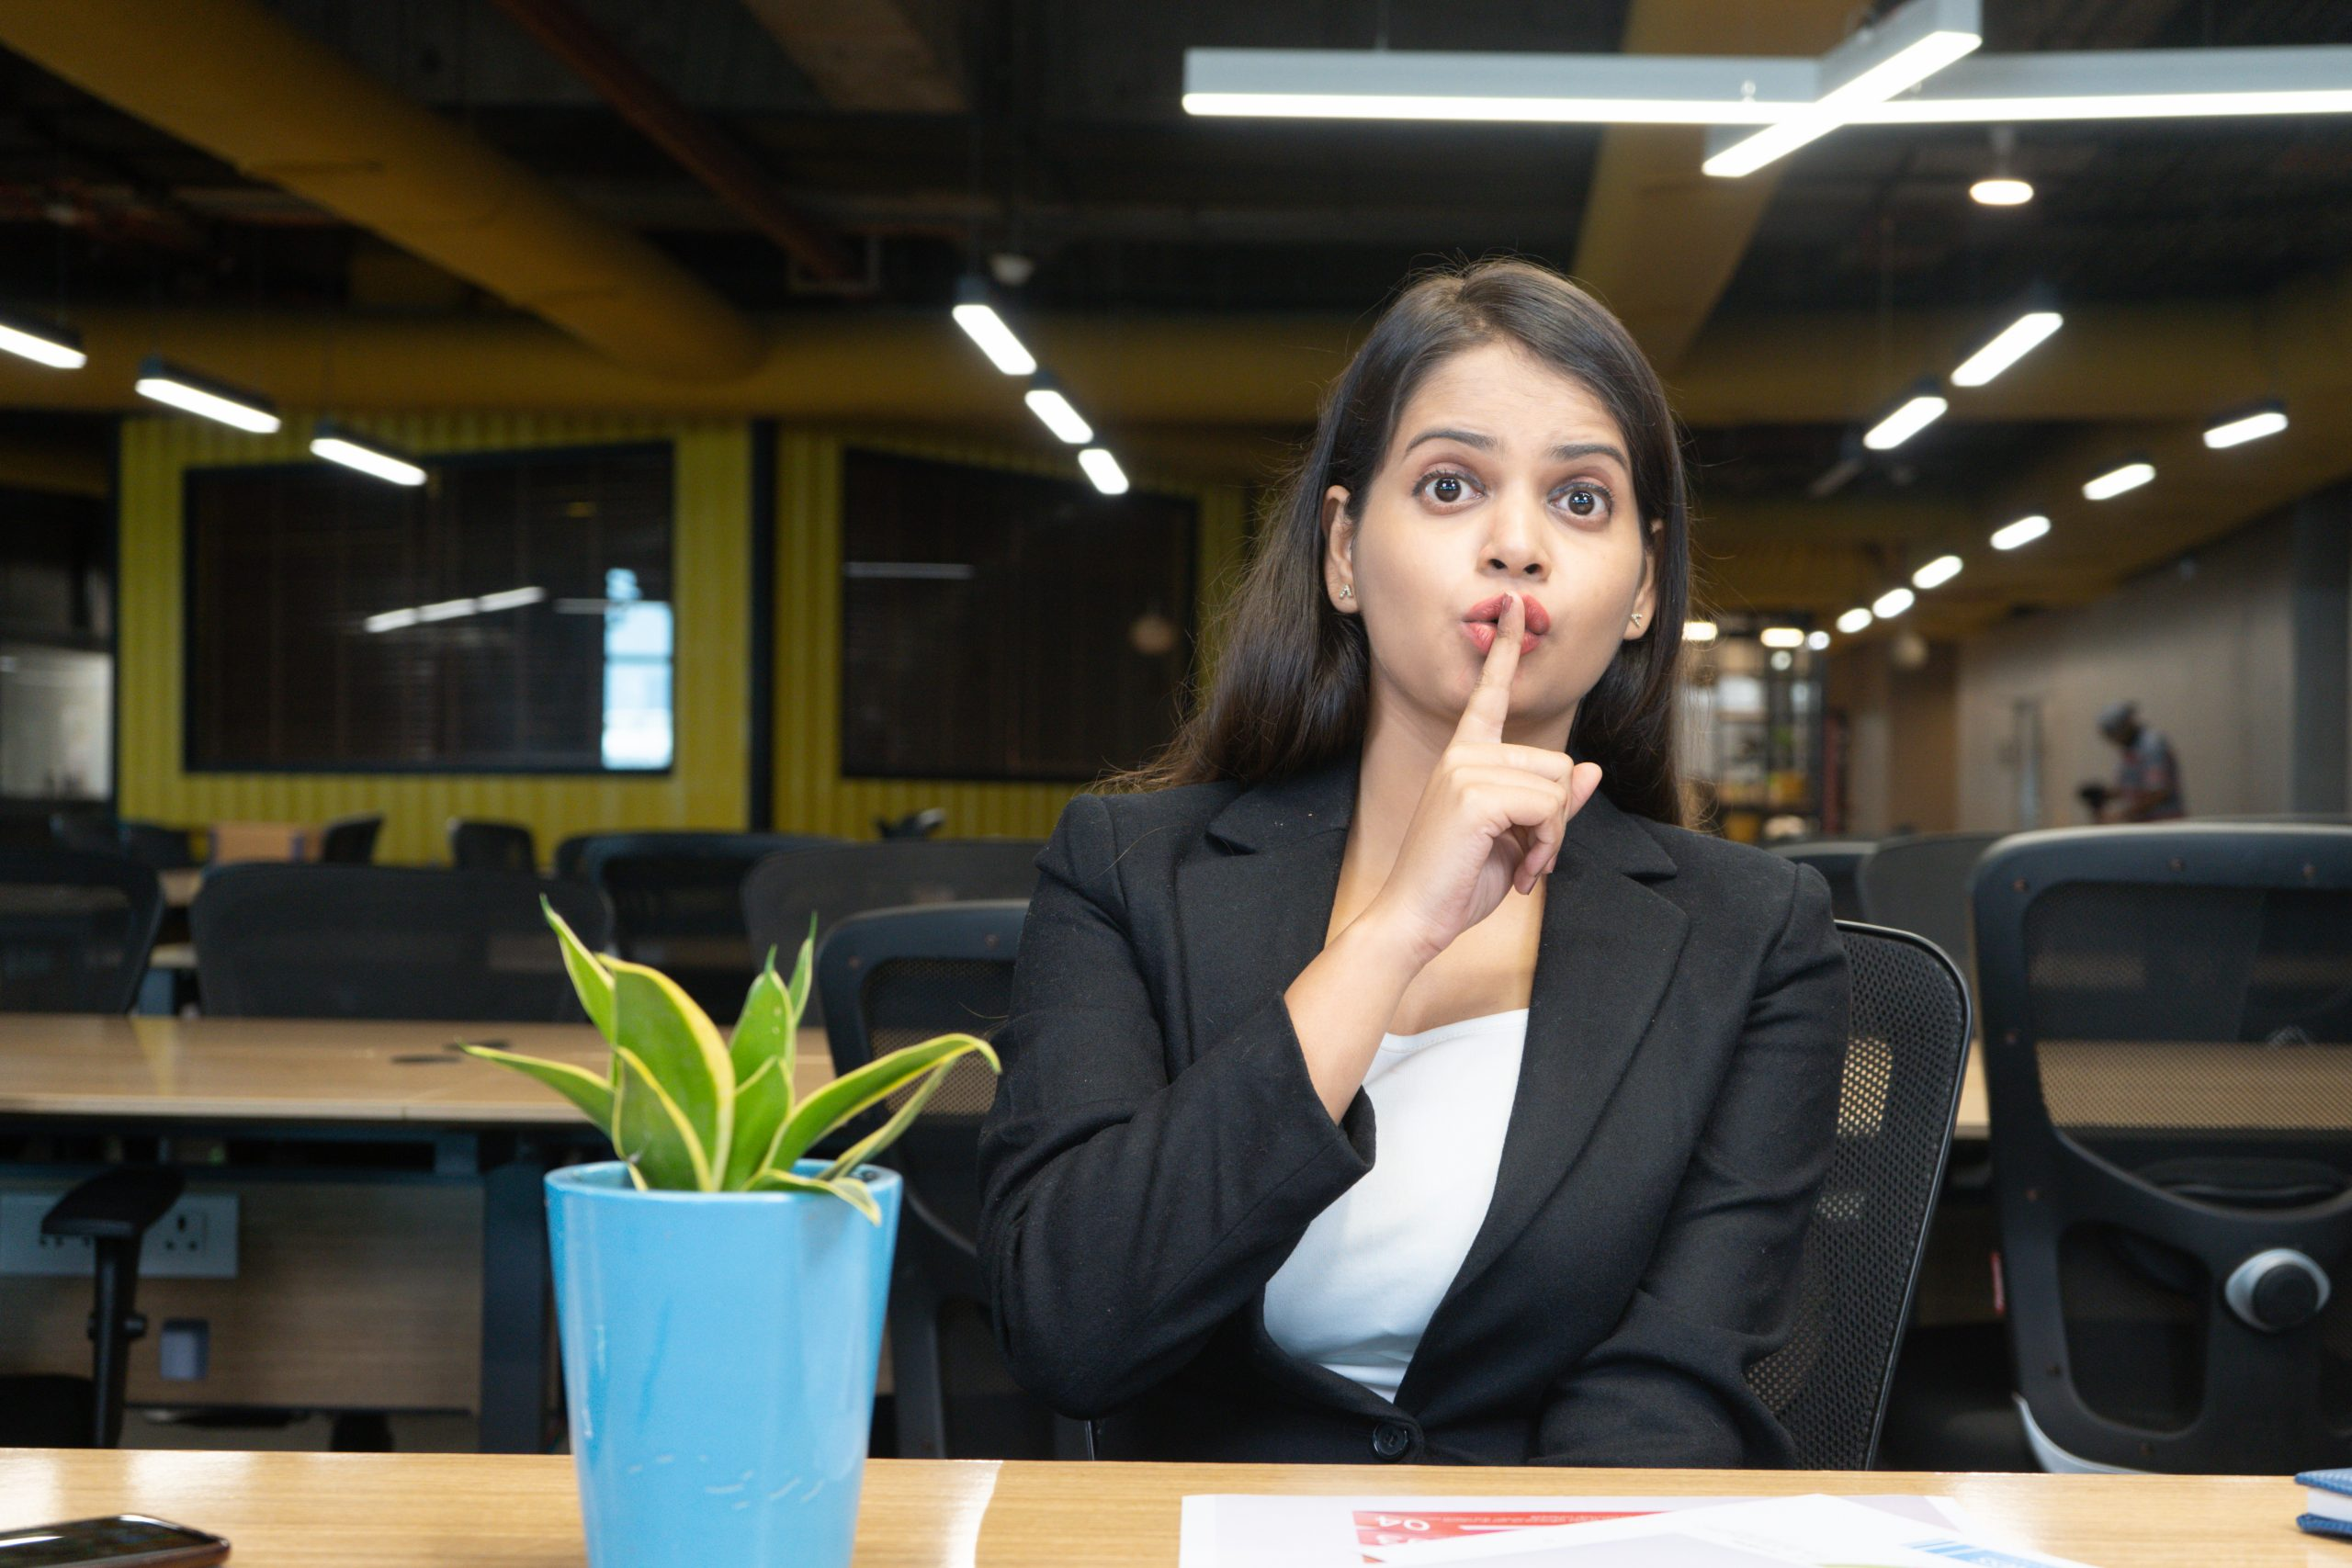 Girl asking to keep quiet in office